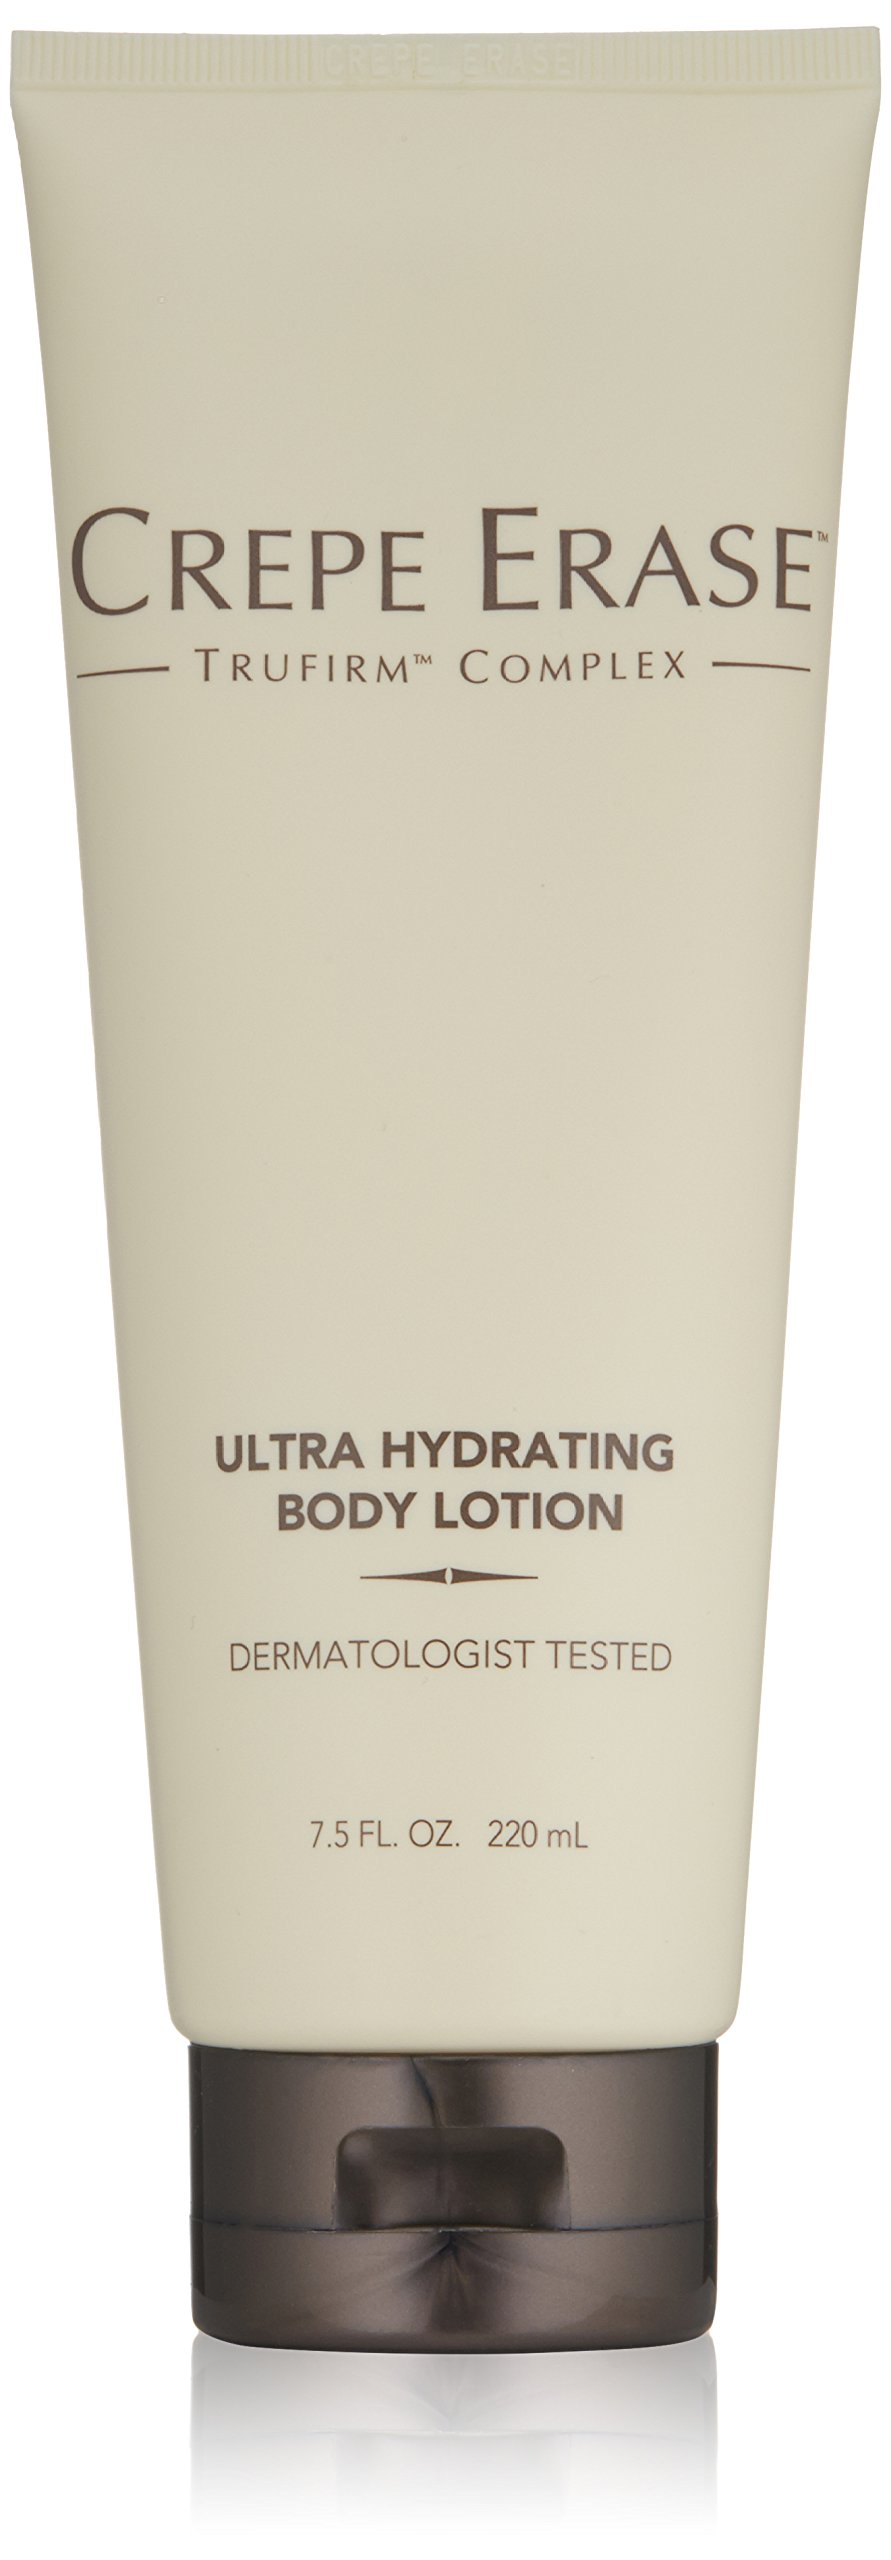 Crepe Erase – Ultra Hydrating Body Lotion – Non Greasy Plumping Treatment –Coconut Oil, Cocoa Butter, Jojoba Ester and TruFirm Complex – 7.5 Fluid Ounces – CS.0048